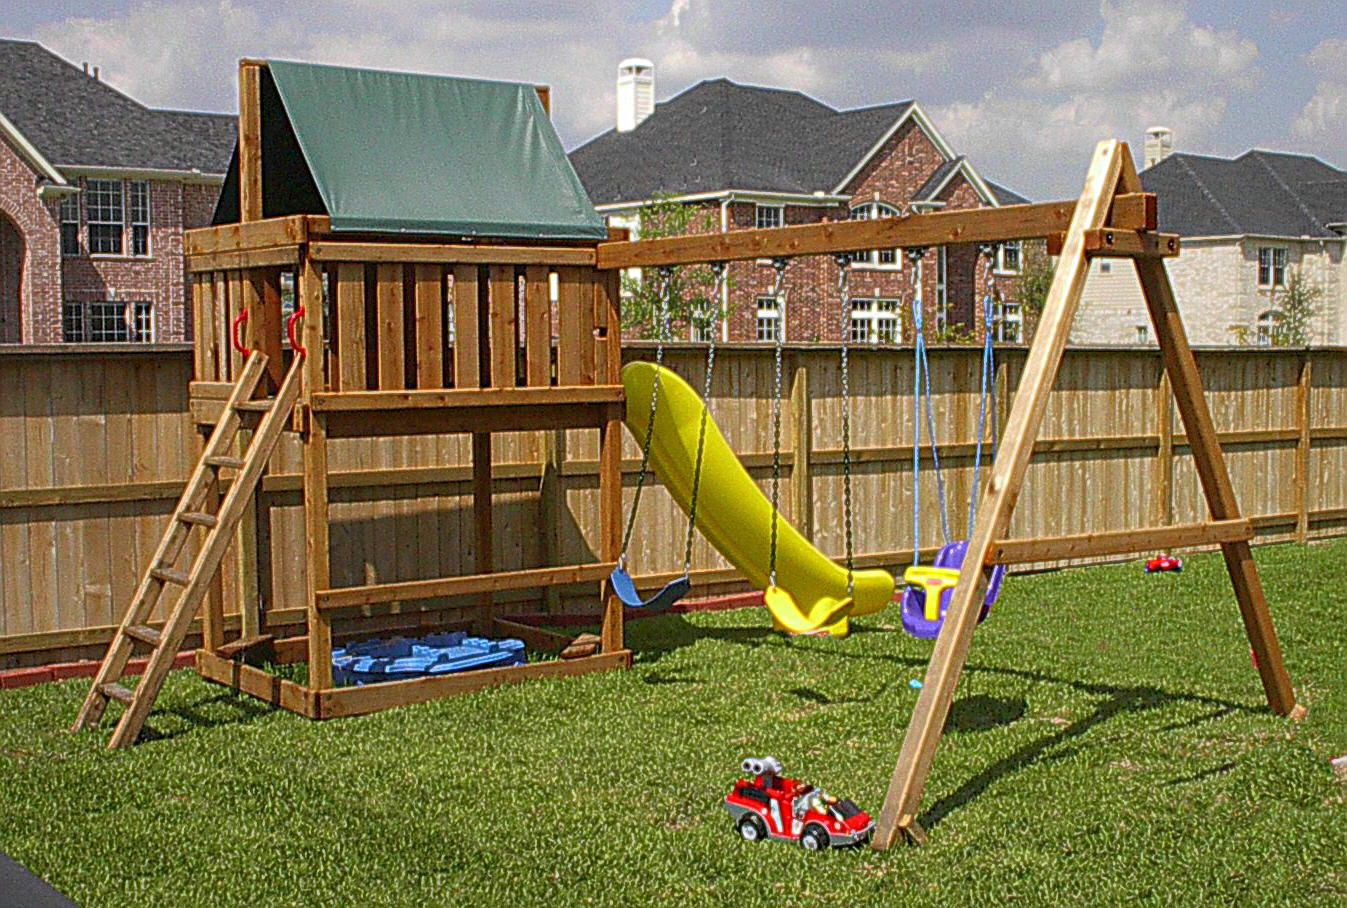 Delightful Jacku0027s Backyard Apollo Redwood Fort With 3 Position Swingset Kit Add On Gallery